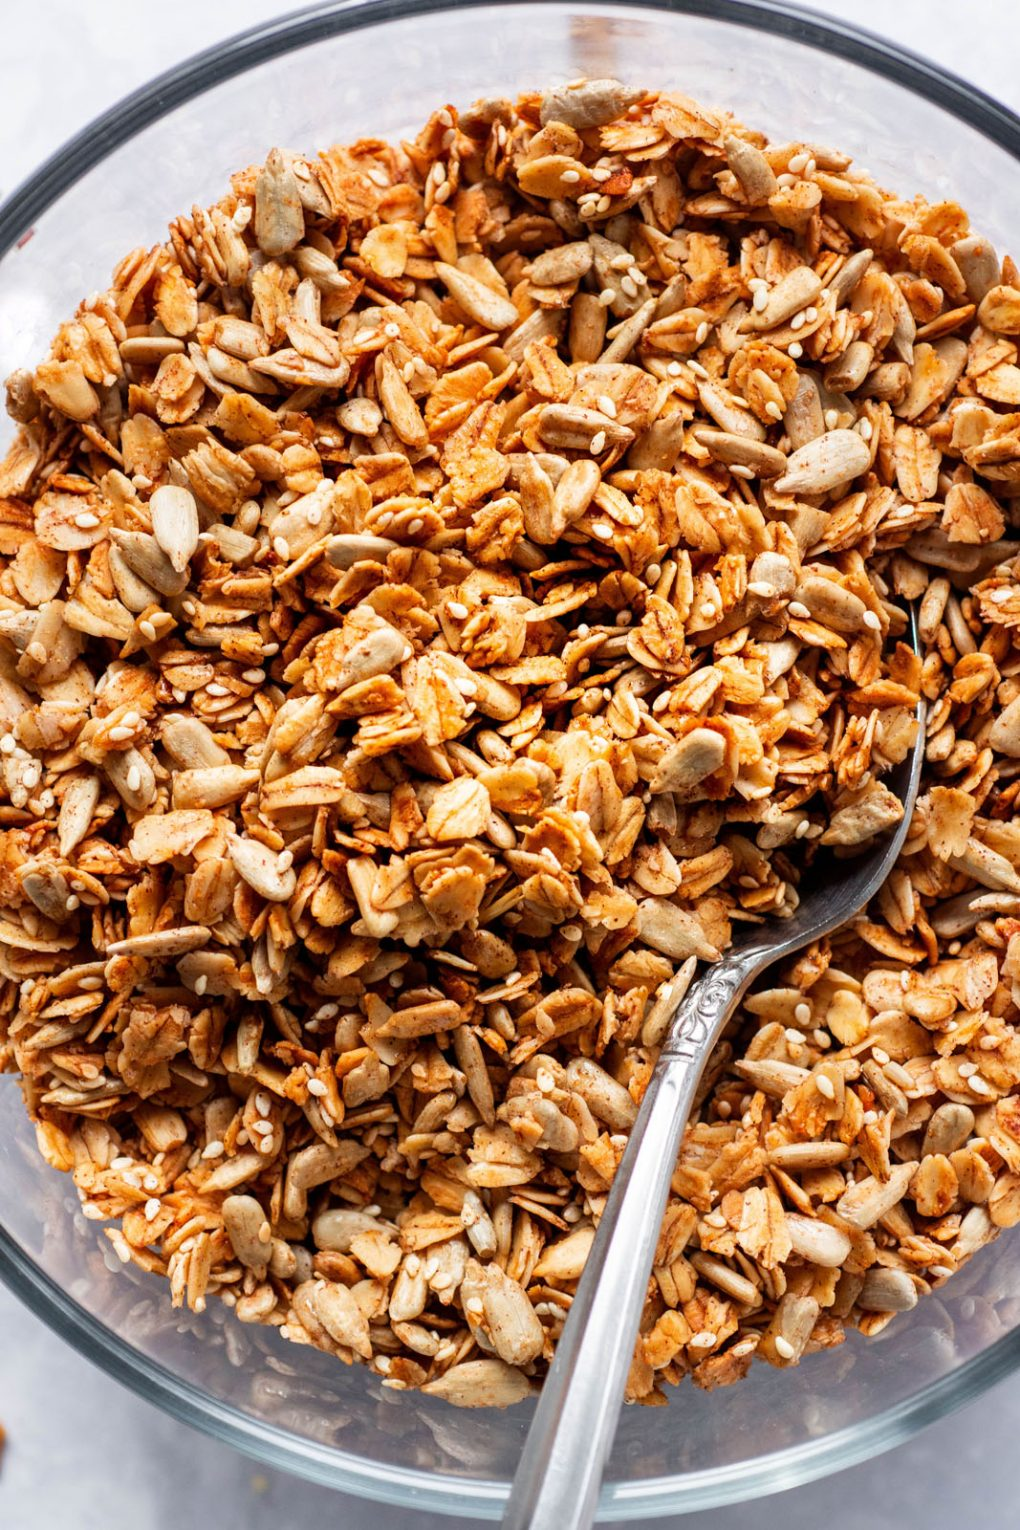 Close up overhead shot of a large glass pyrex dish full of toasty granola with a silver spoon angled in. On a white background.